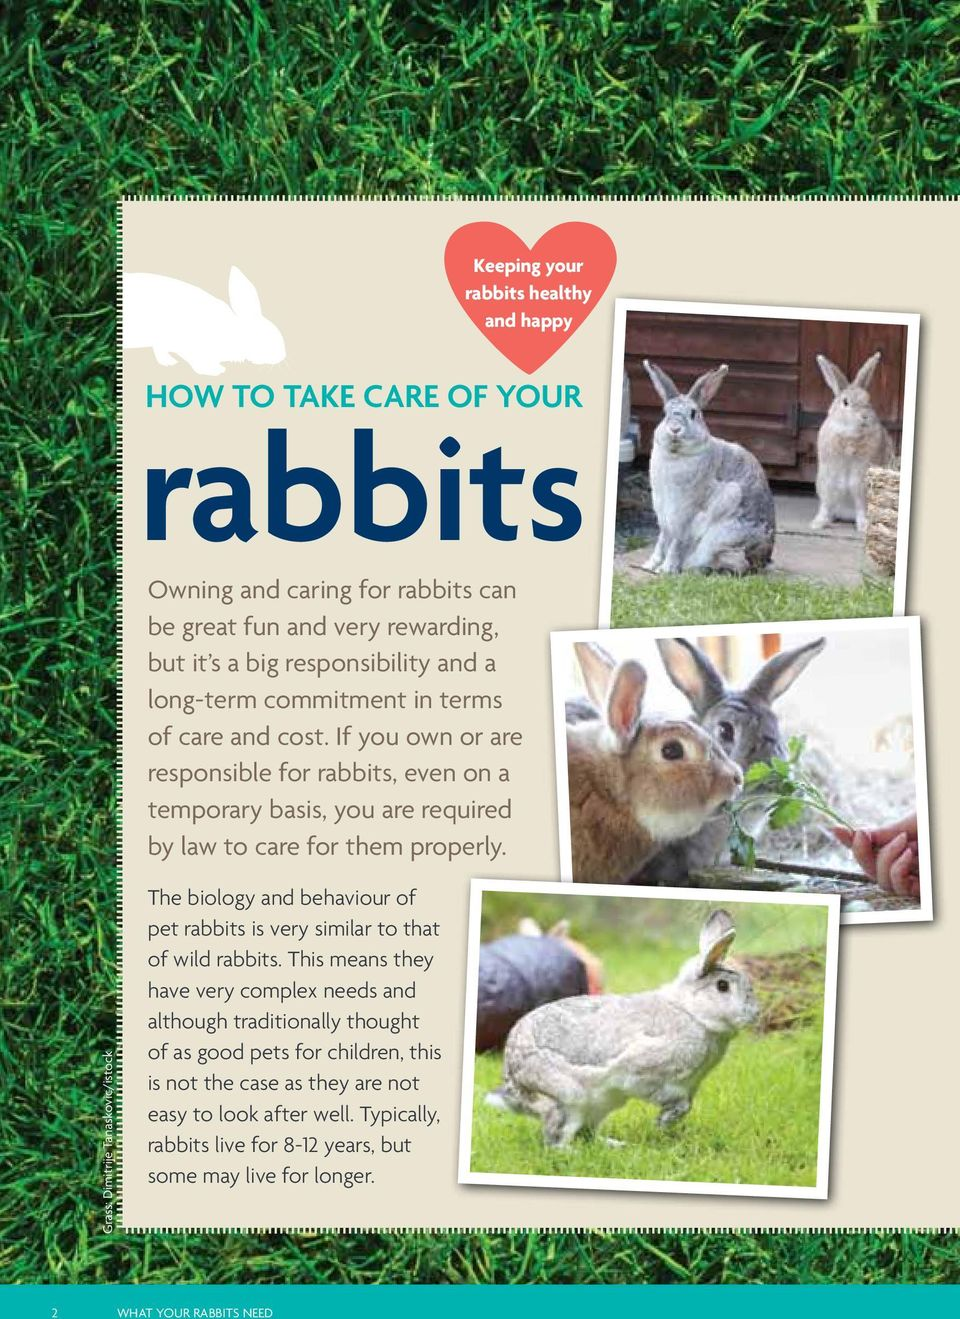 Grass: Dimitrije Tanaskovic/istock The biology and behaviour of pet rabbits is very similar to that of wild rabbits.